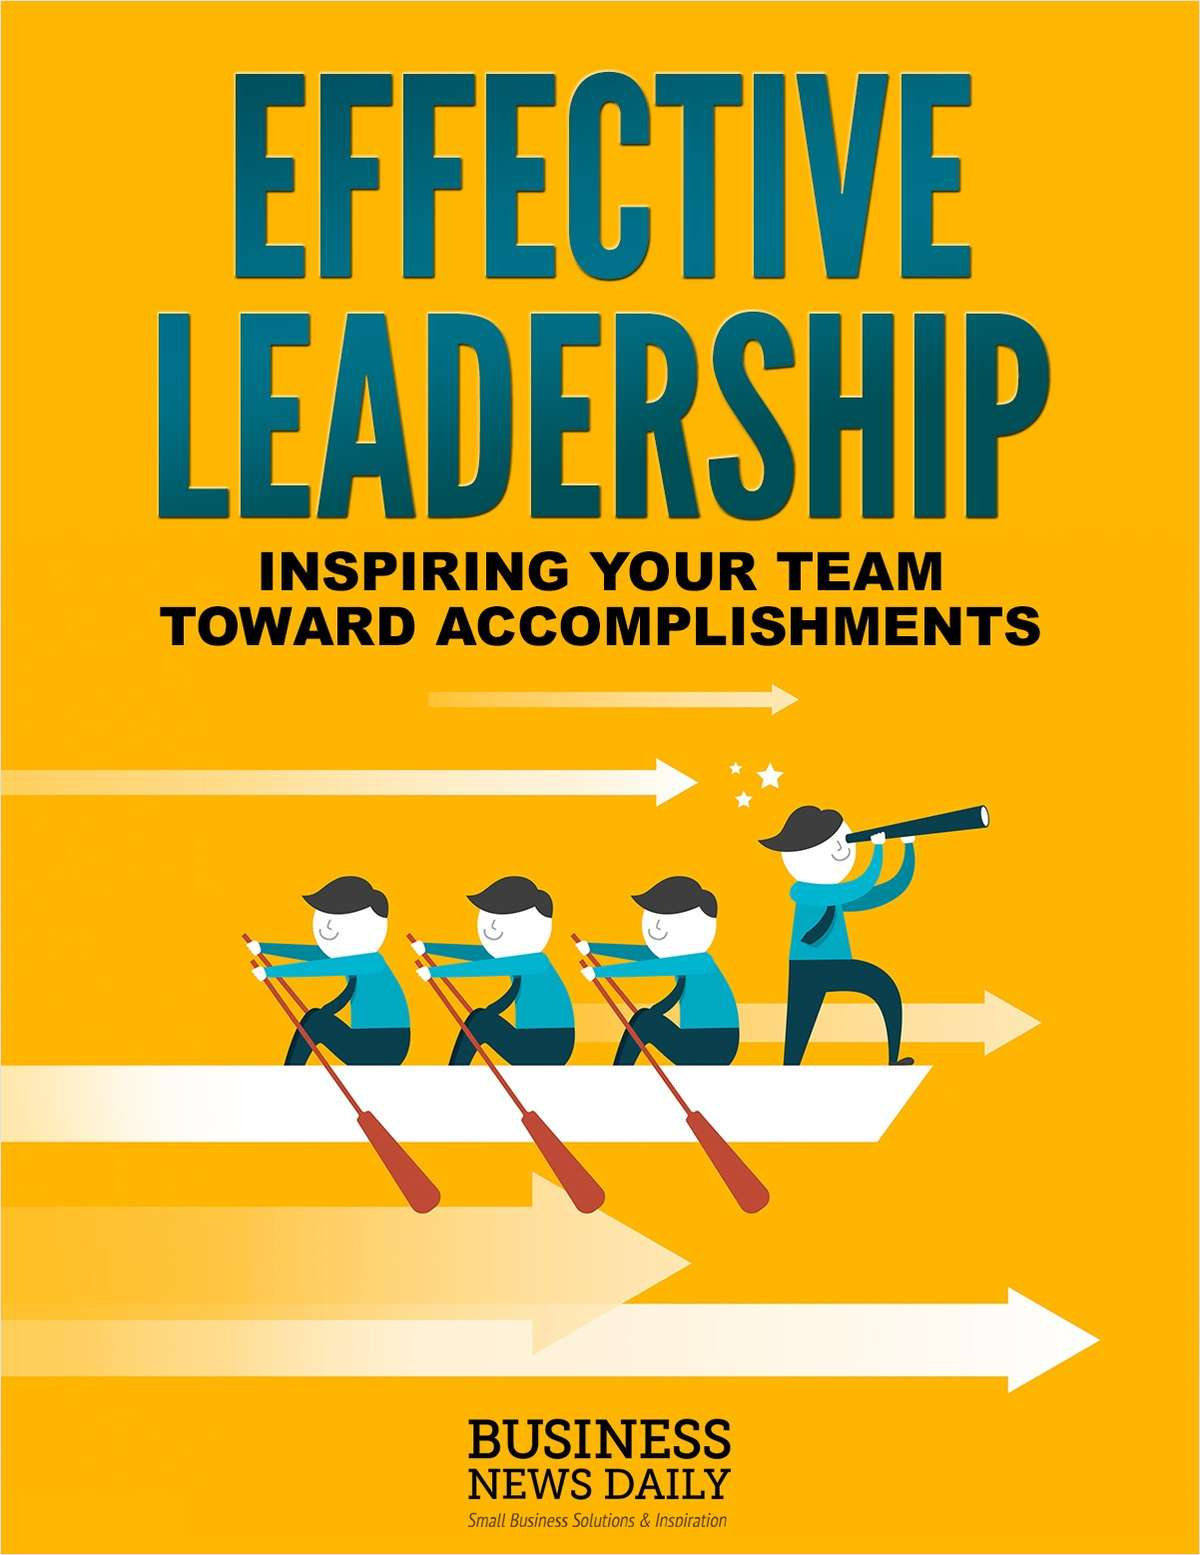 Effective Leadership - Inspiring Your Team Toward Accomplishments